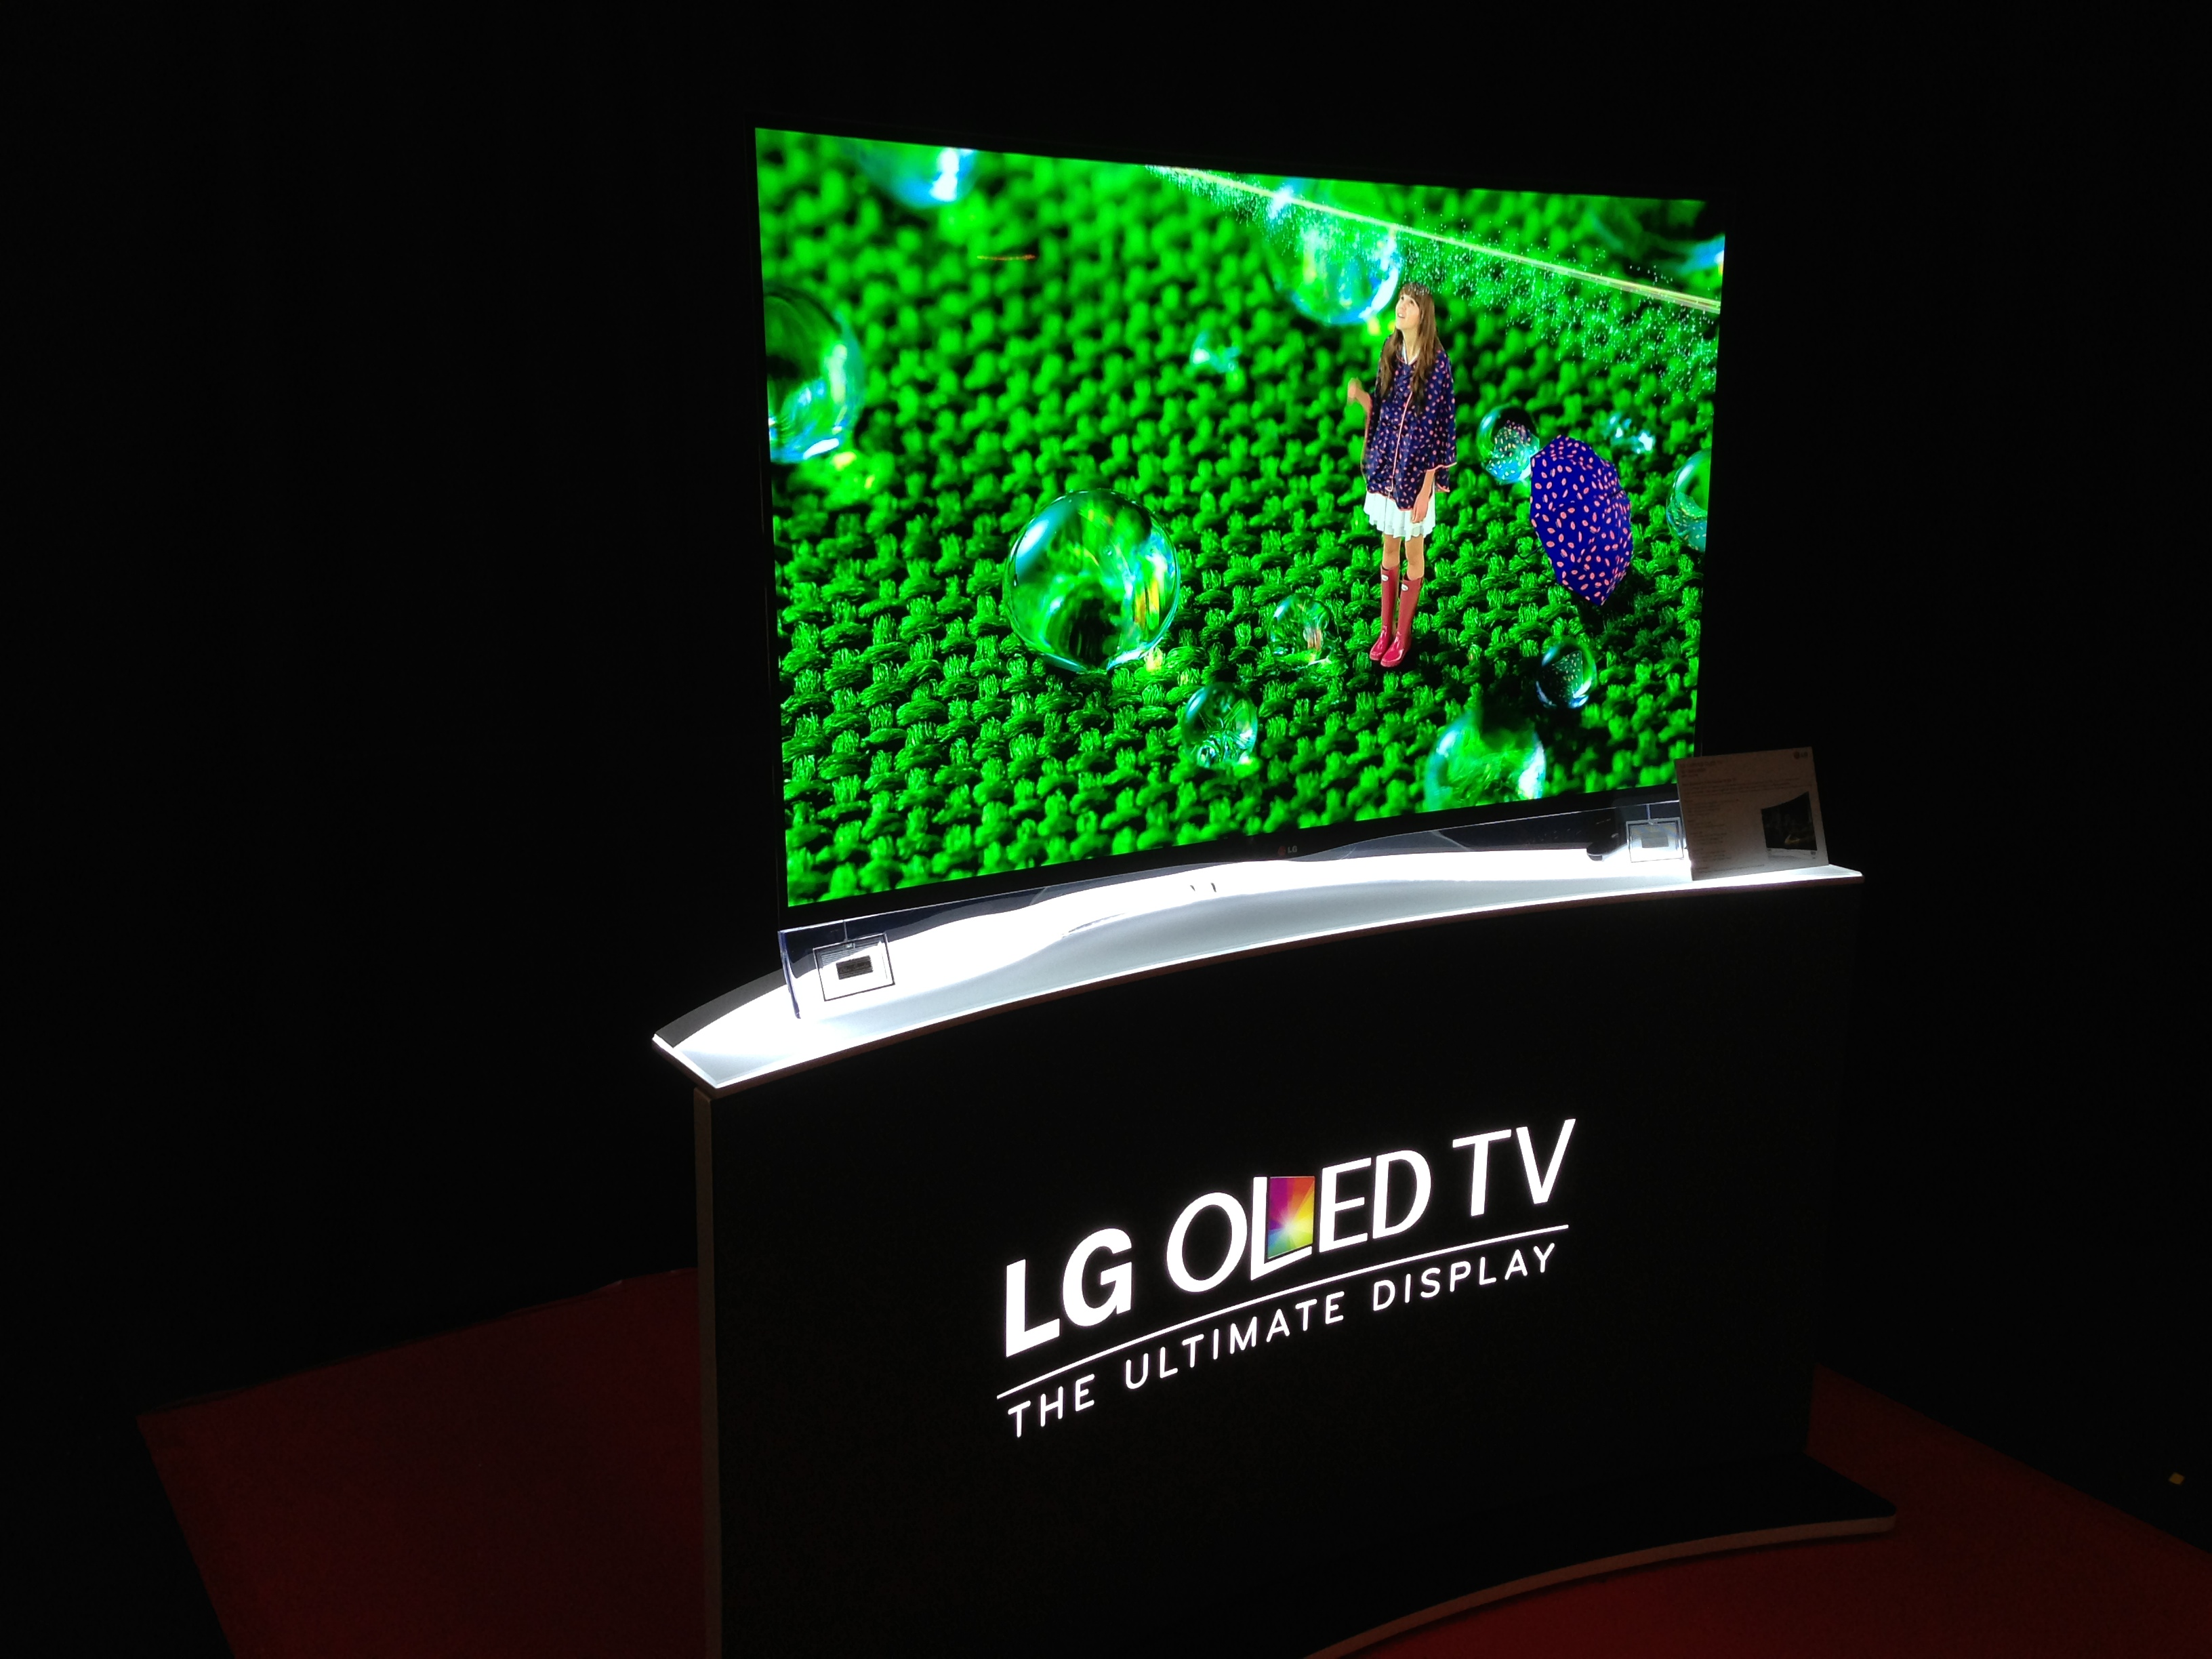 lg curved 55 oled tv to go on sale in new zealand. Black Bedroom Furniture Sets. Home Design Ideas